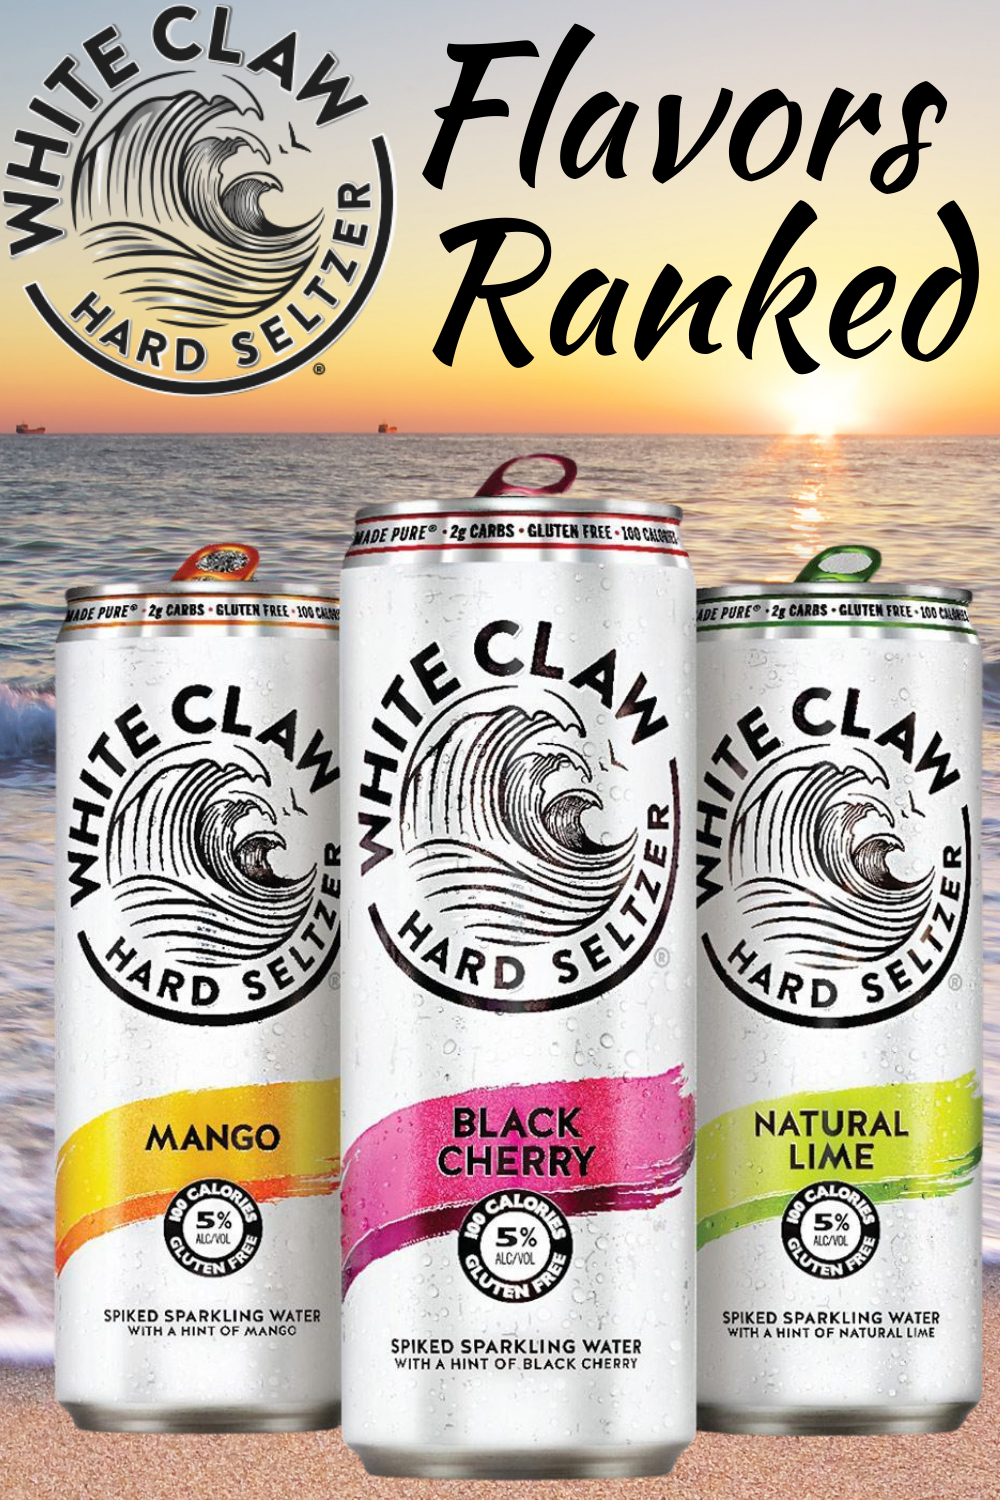 Best White Claw Flavors Ranked Hard Seltzer Apple Cranberry Candle Smell